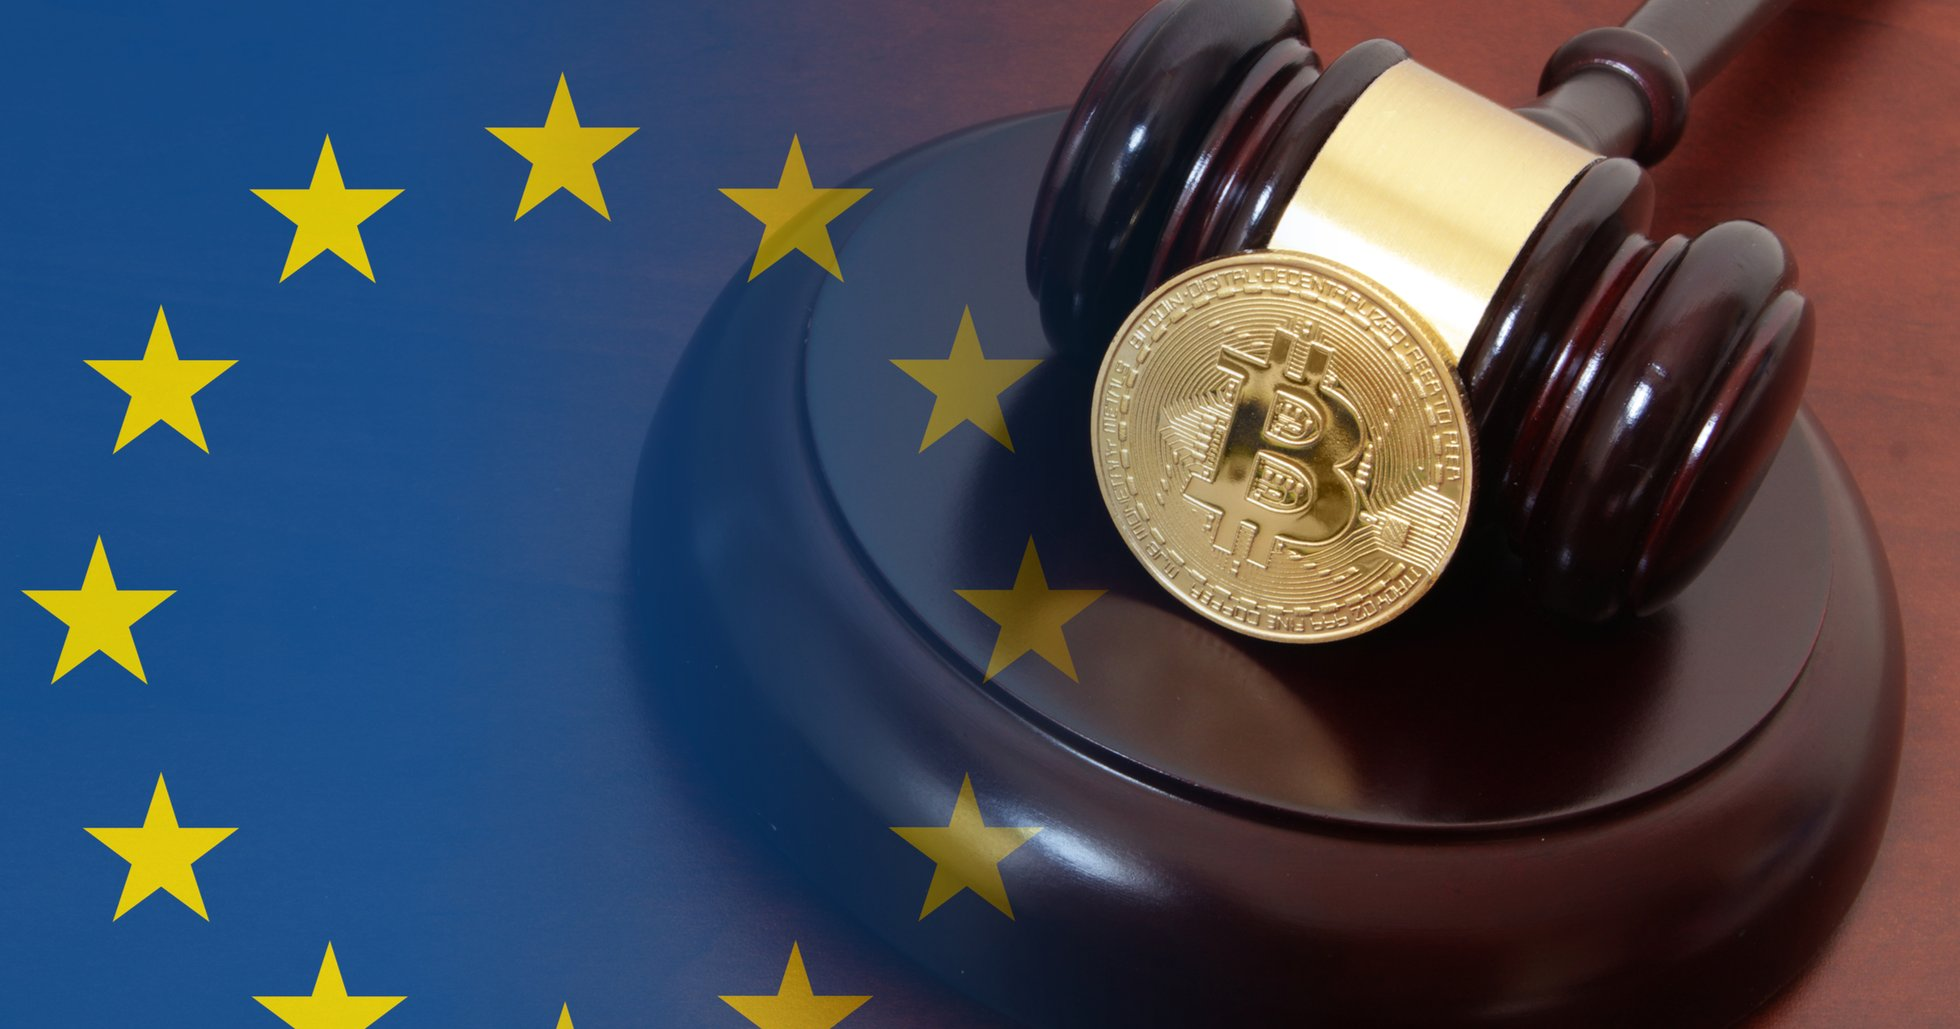 Source: EU wants to regulate stablecoins – not issue its own